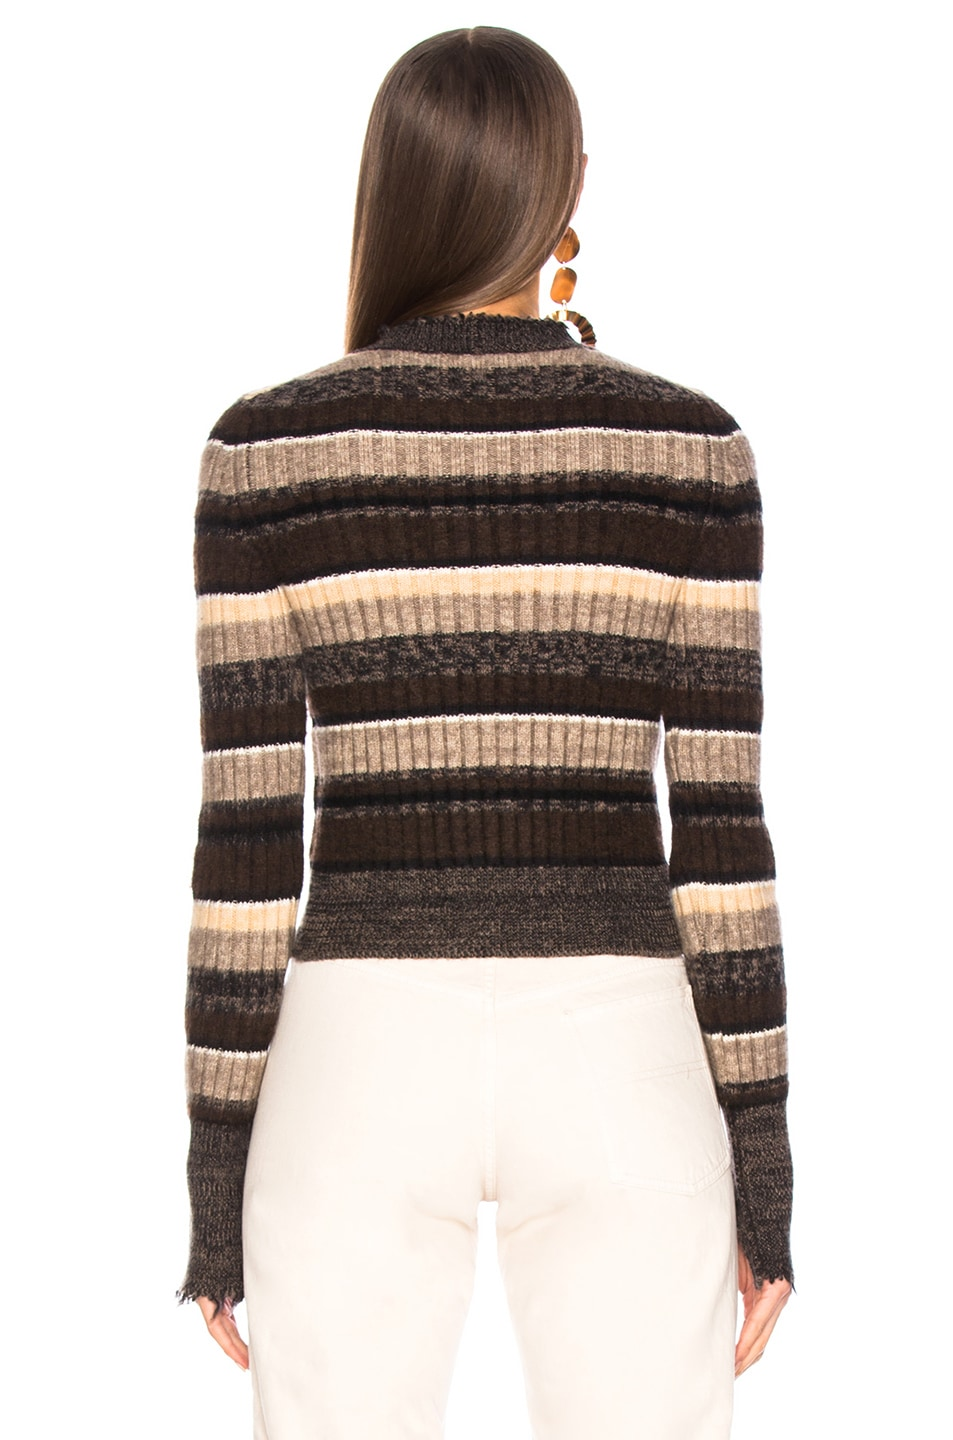 Image 3 of Helmut Lang Ombre Shrunken Crew Neck Sweater in Mocha Melange Stripe